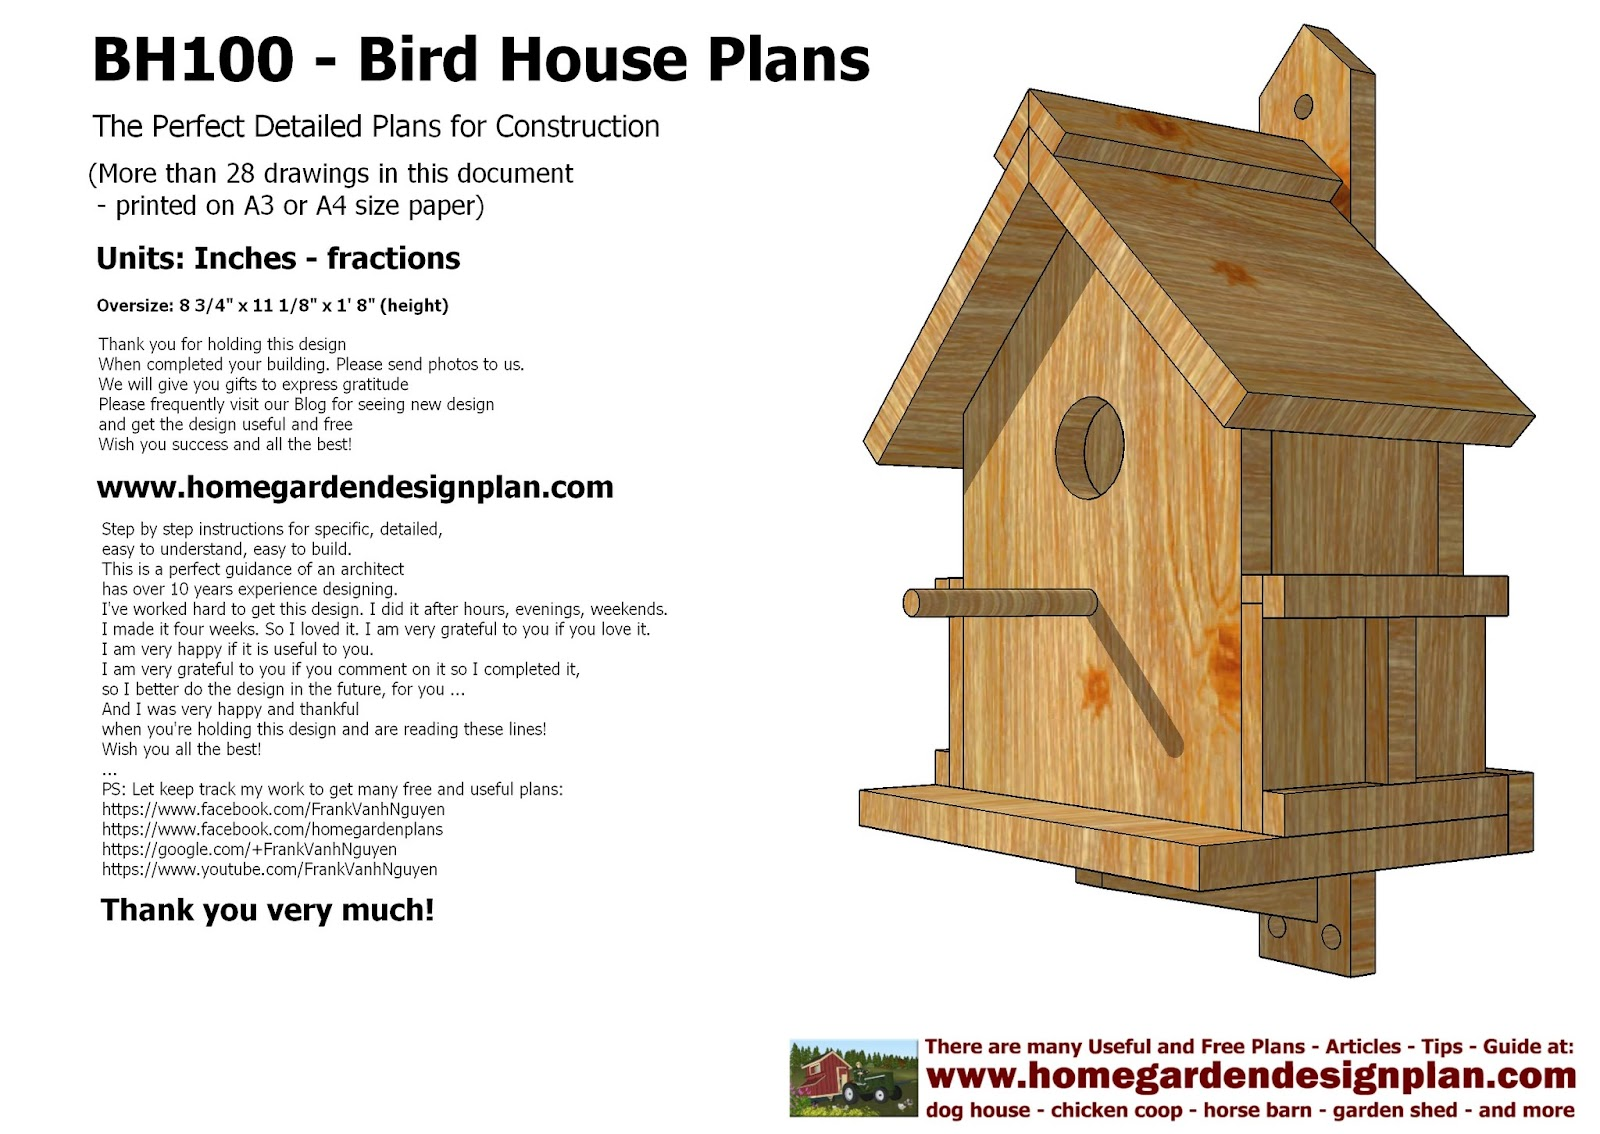 home garden plans: home garden plans: BH100 - Bird House Plans ...